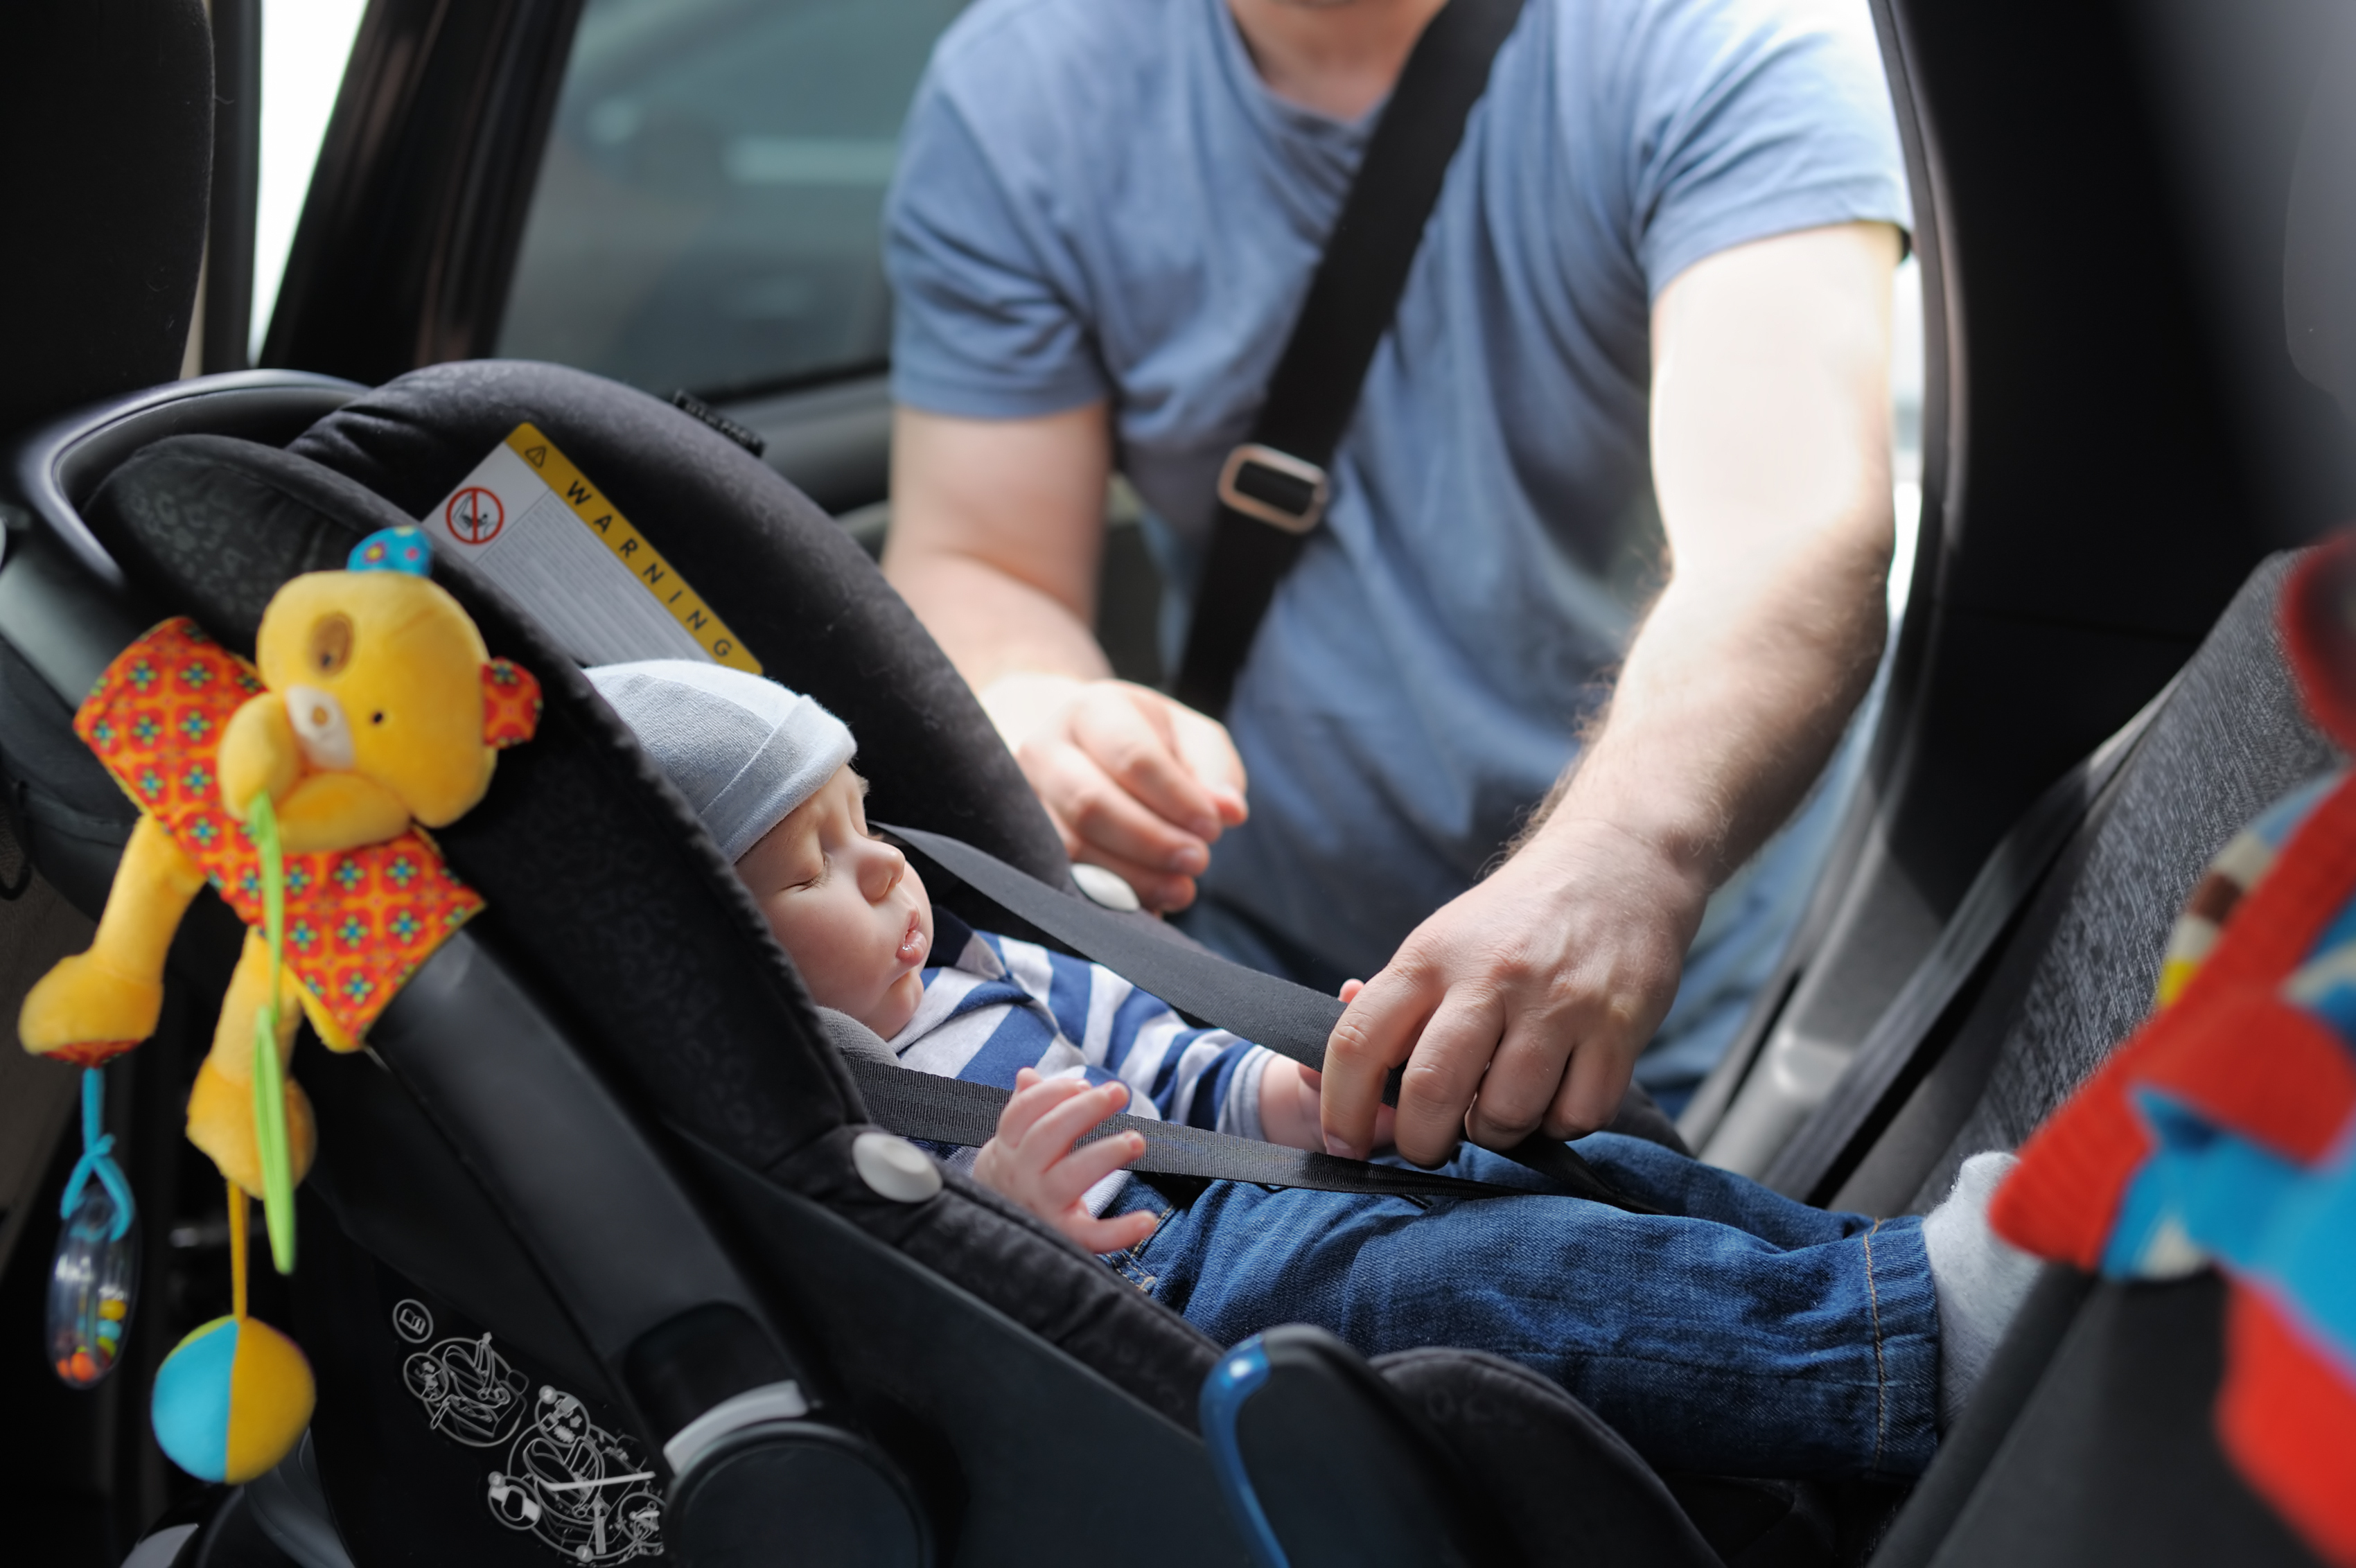 Is Your Child's Car Seat Installed Incorrectly?